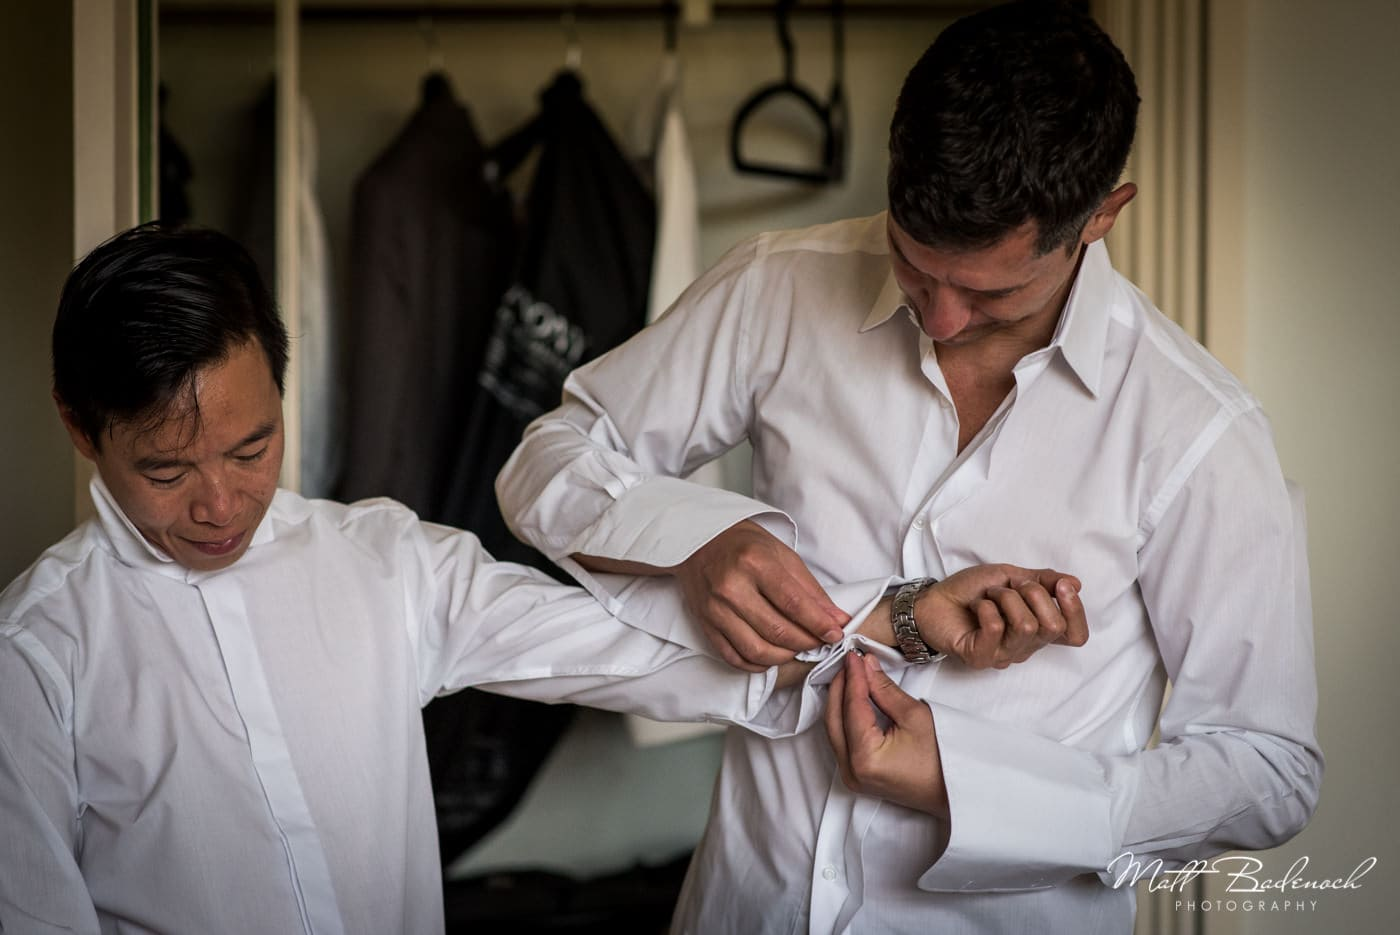 Grooms getting ready before their samesex wedding at Leeds Castle